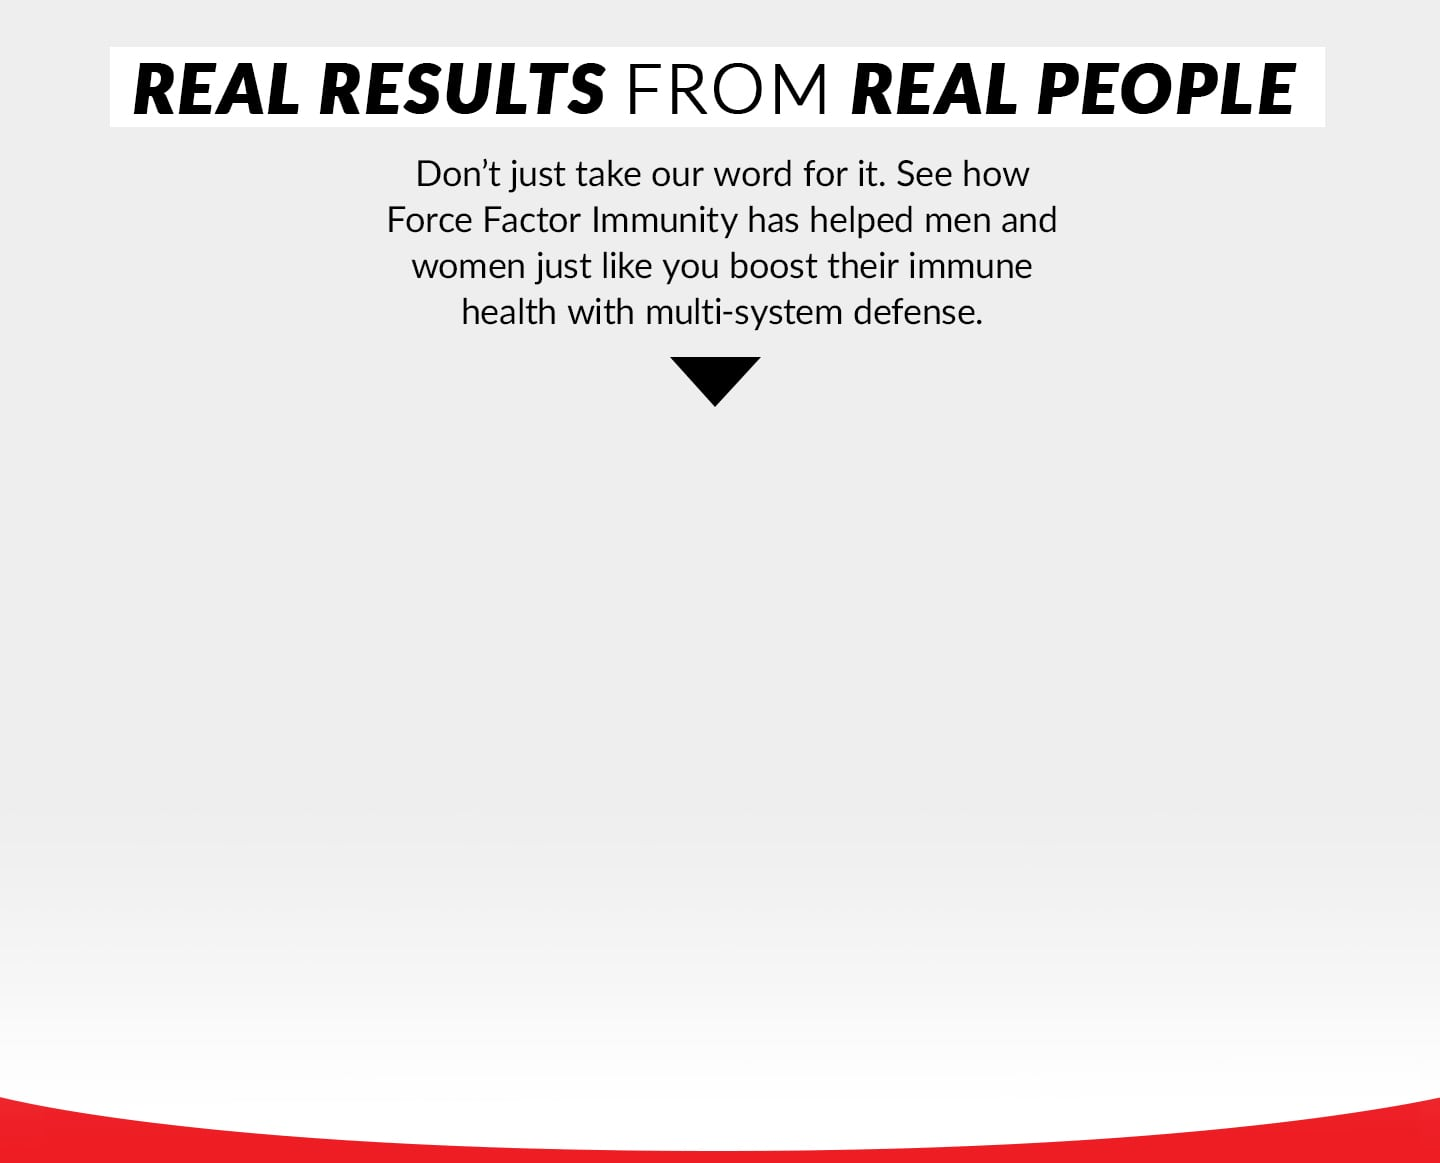 REAL RESULTS FROM REAL PEOPLE. Don't just take our word for it. See how Force Factor Immunity has helped men and women just like you boost their immune health with multi-system defense.